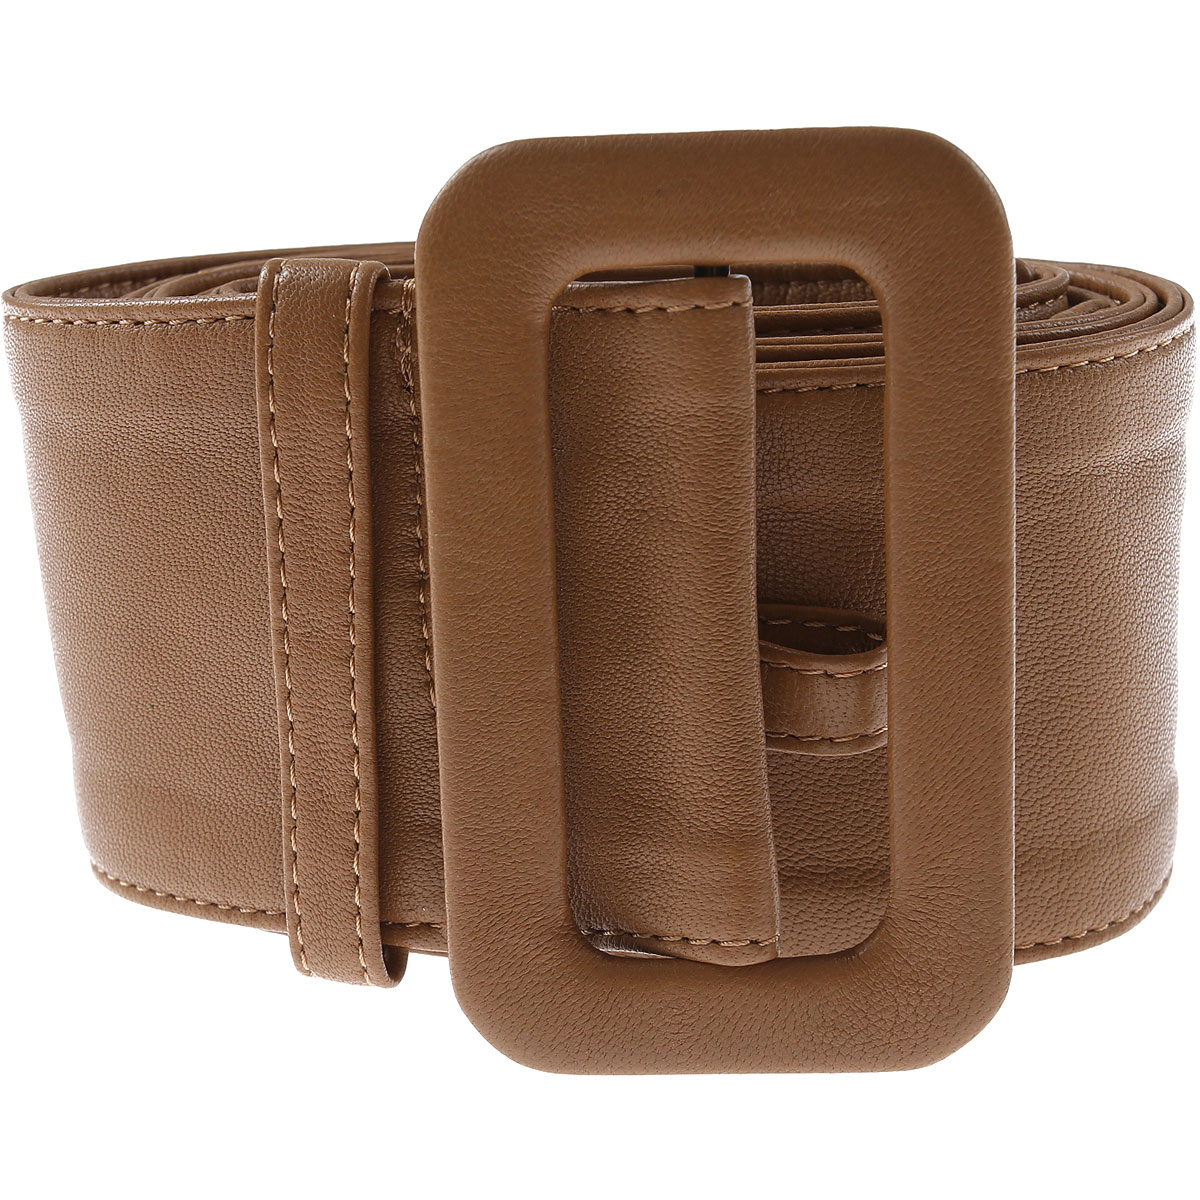 Federica Tosi Belt for Women On Sale, Camel, Leather, 2019